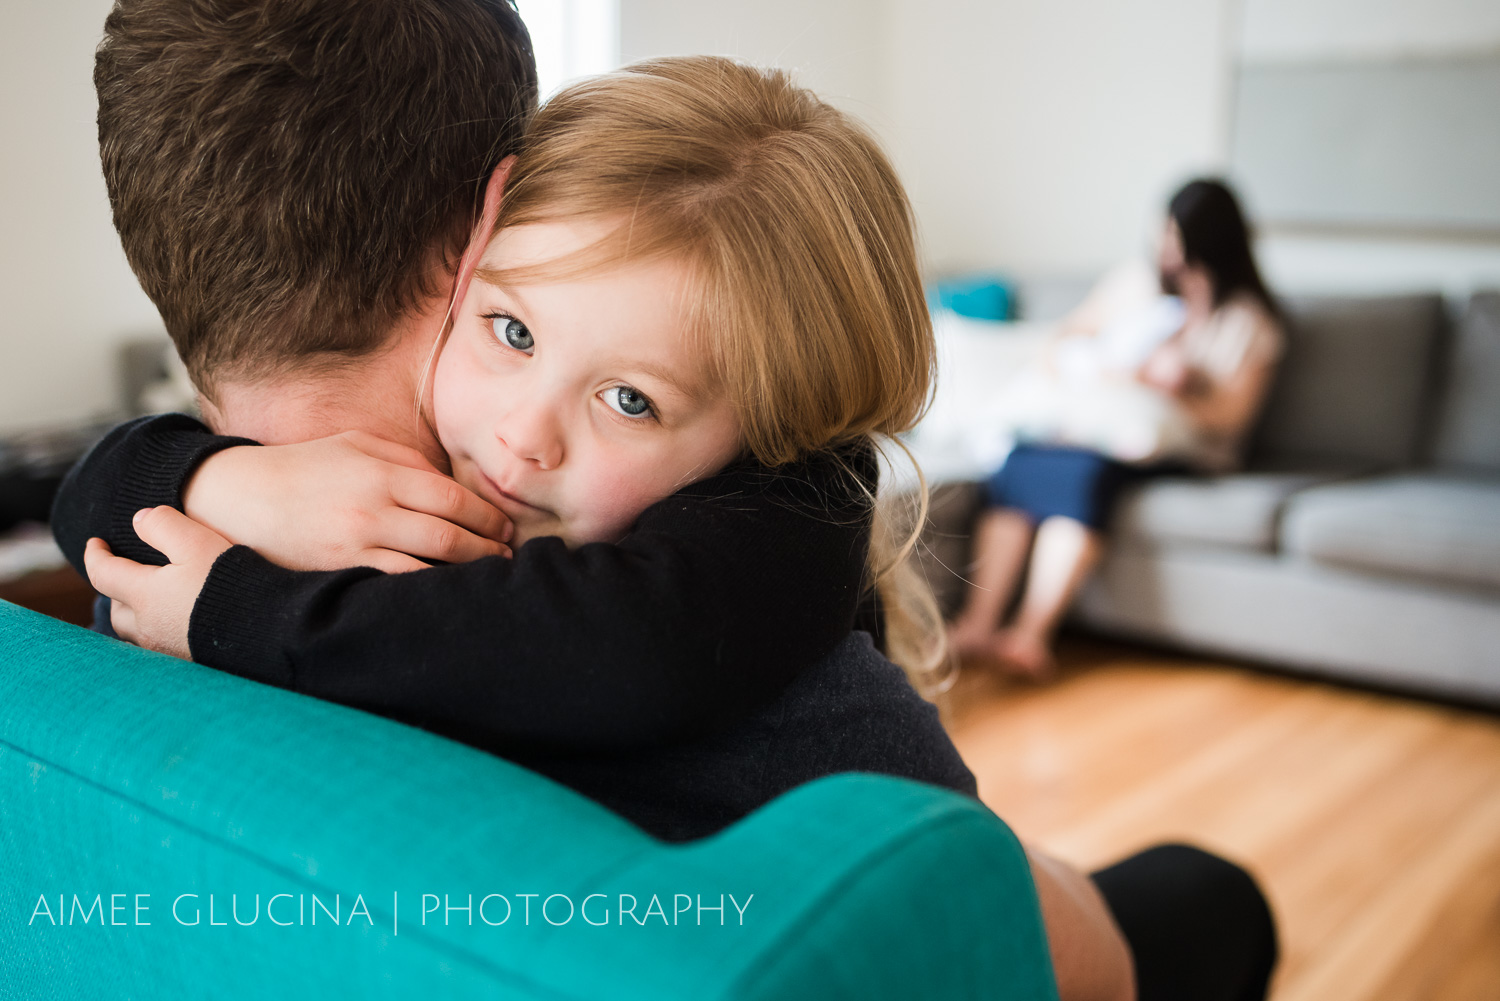 Lifestyle images of Fathers by Aimee Glucina Photography.jpg